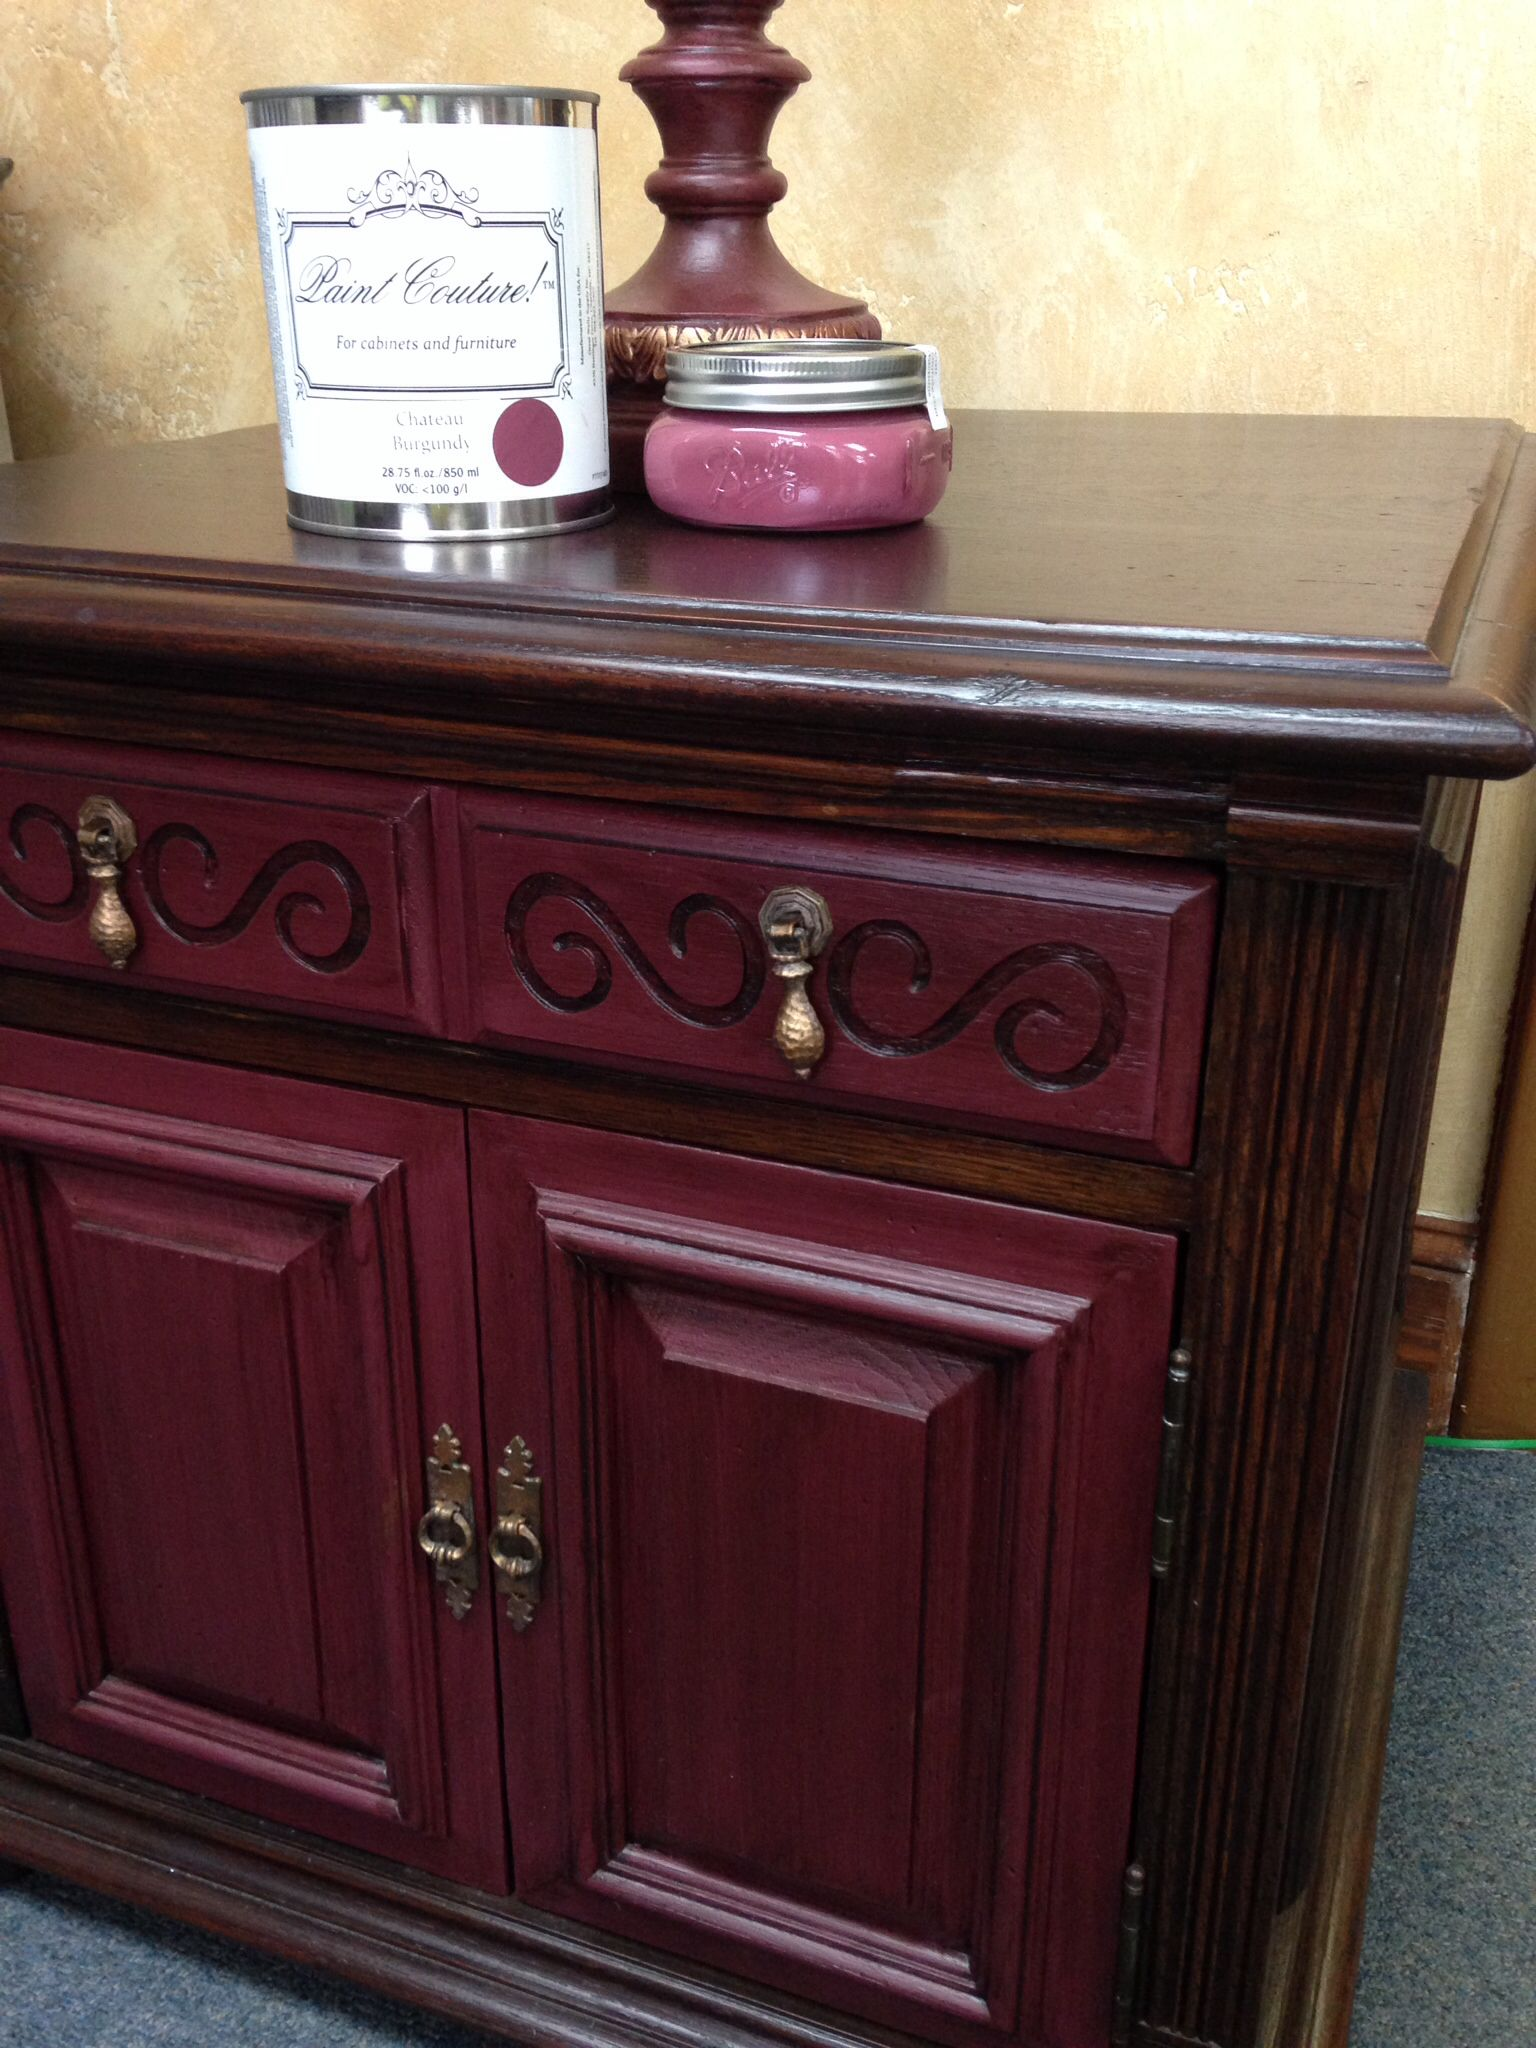 Painted Furniture In Cau Burgundy Paint Couture Tm Glazed With Rich Mahogany Glaze On The Wood Top Used This As A Stain